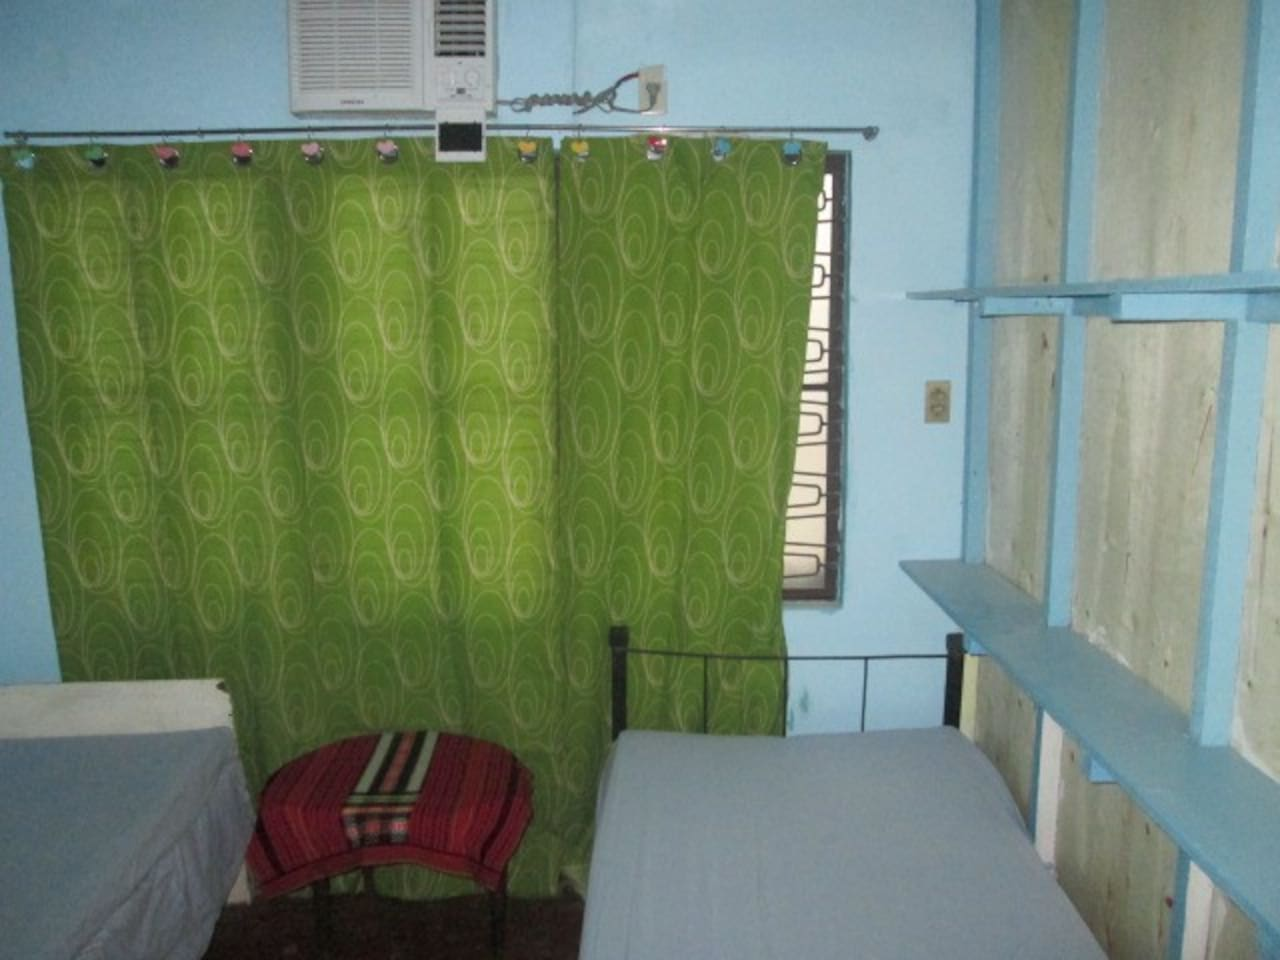 Crib for sale in olongapo - Apartments For Rent In Olongapo Zambales Philippines